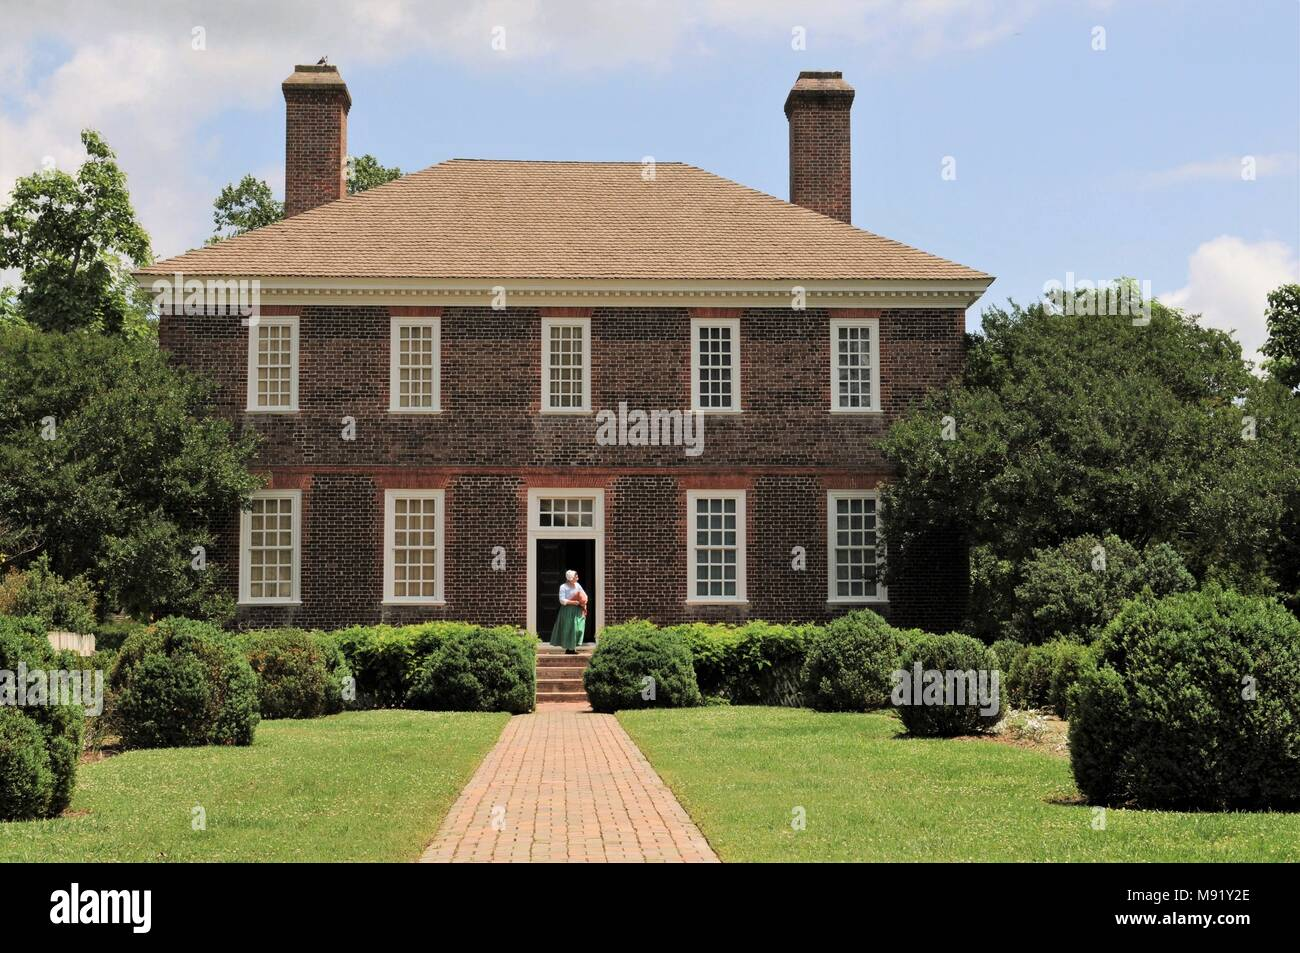 The George Wythe House in Colonial Williamsburg, Virginia. - Stock Image